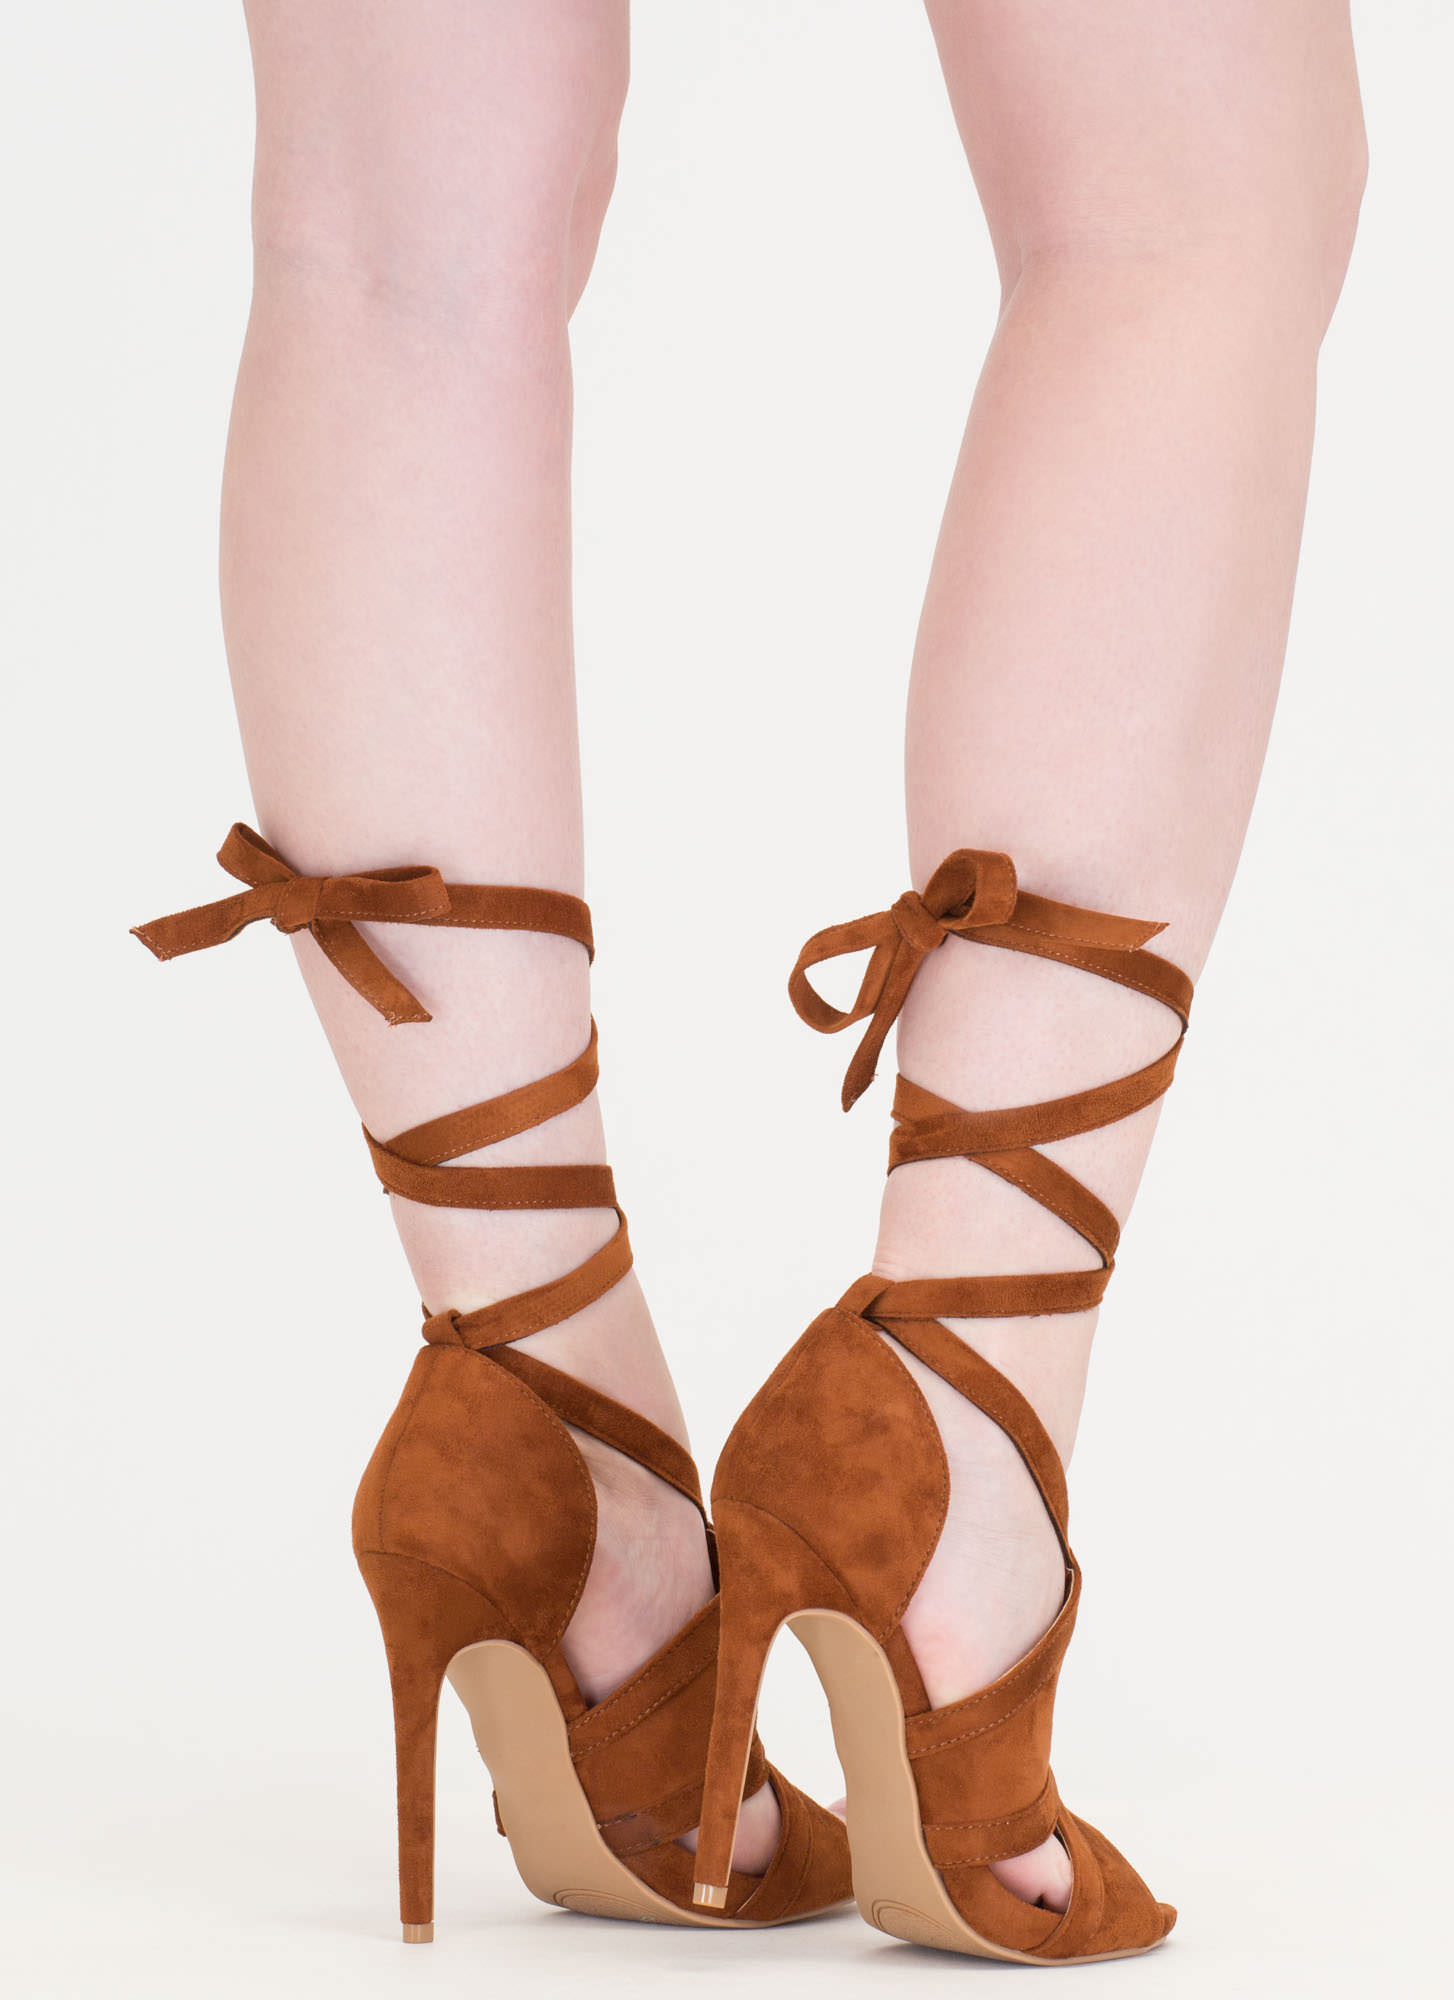 Rip Tied Faux Suede Tie-Up Heels CHESTNUT